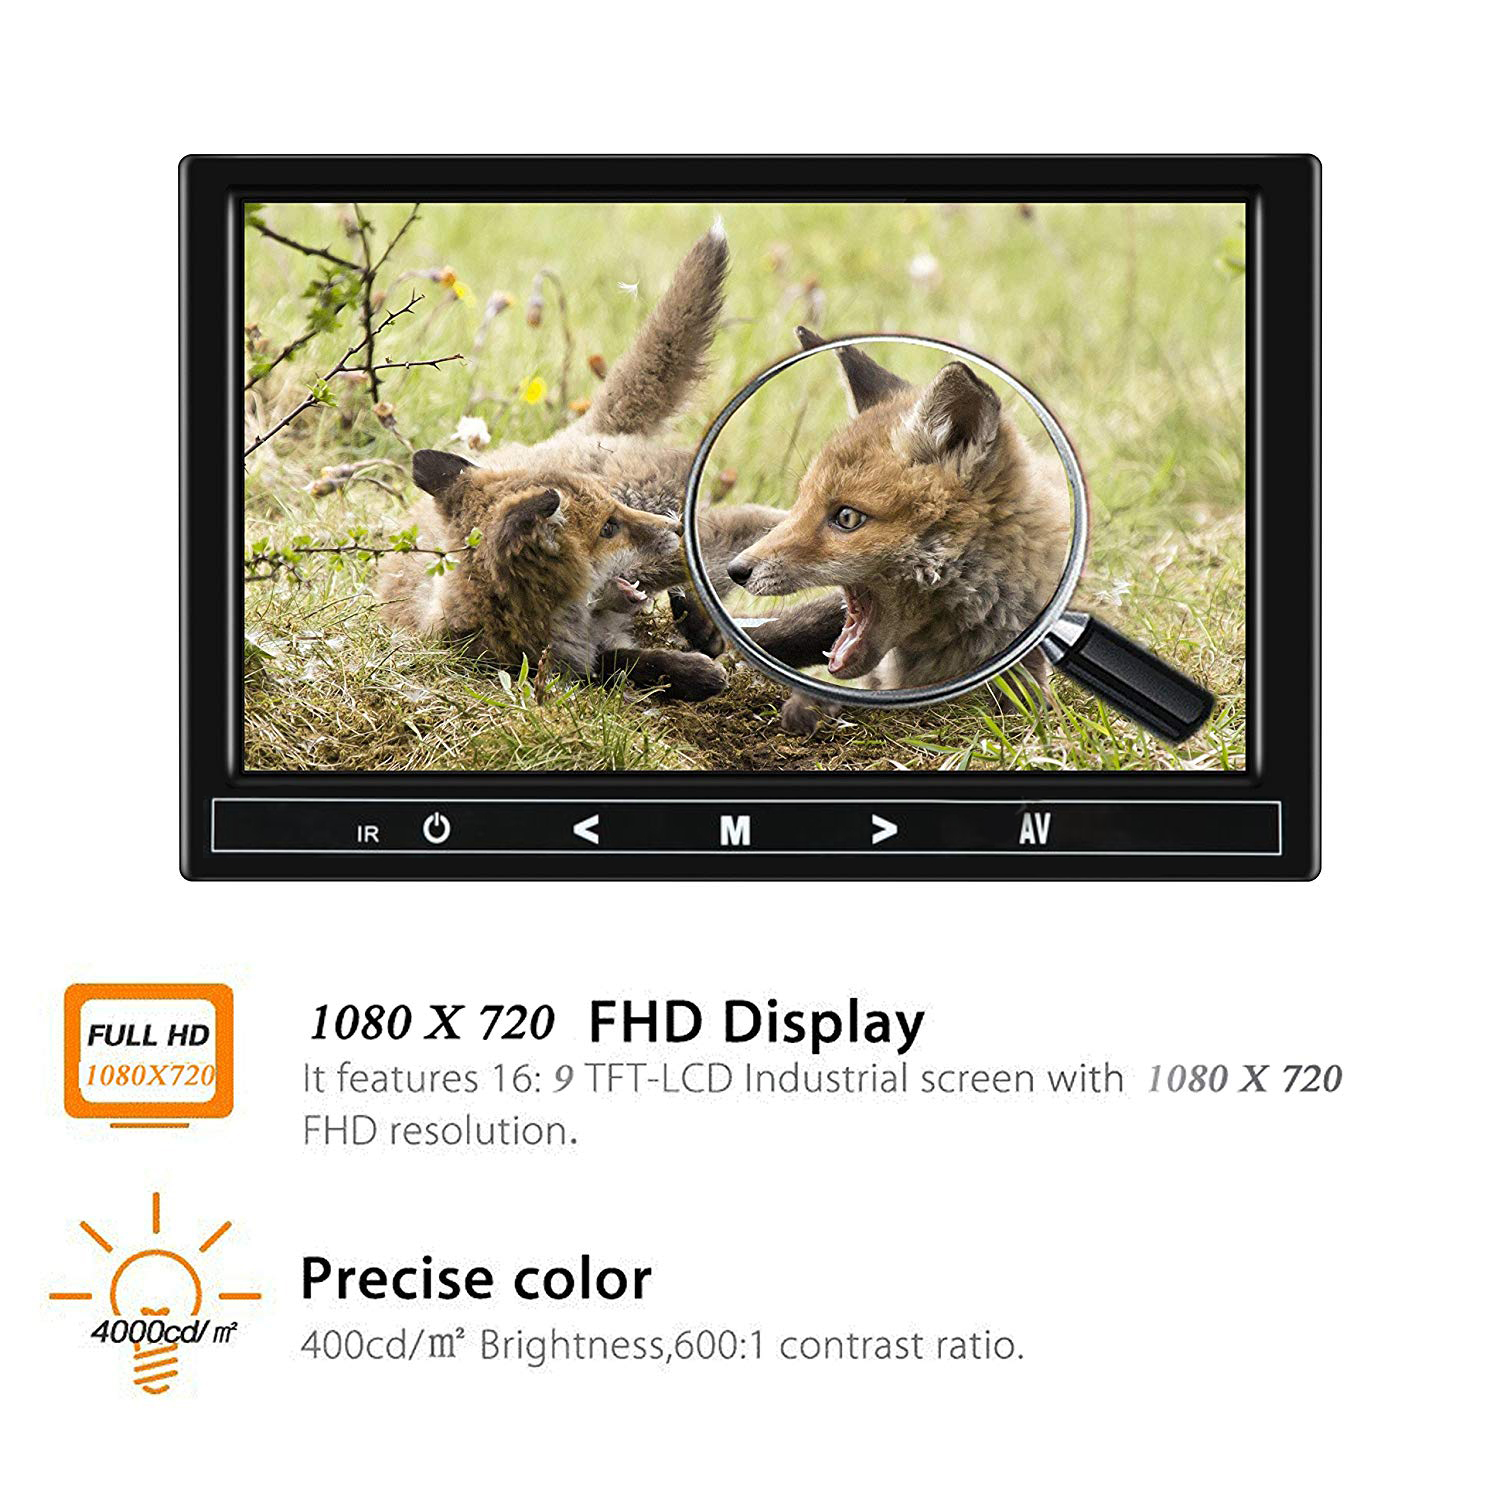 9inch Screen HD TFT LCD Portable 1080x720 (16:9 ) Resolution Color Screen Video Monitor with VGA AV HDMI for PC/CCTV/Home Security.